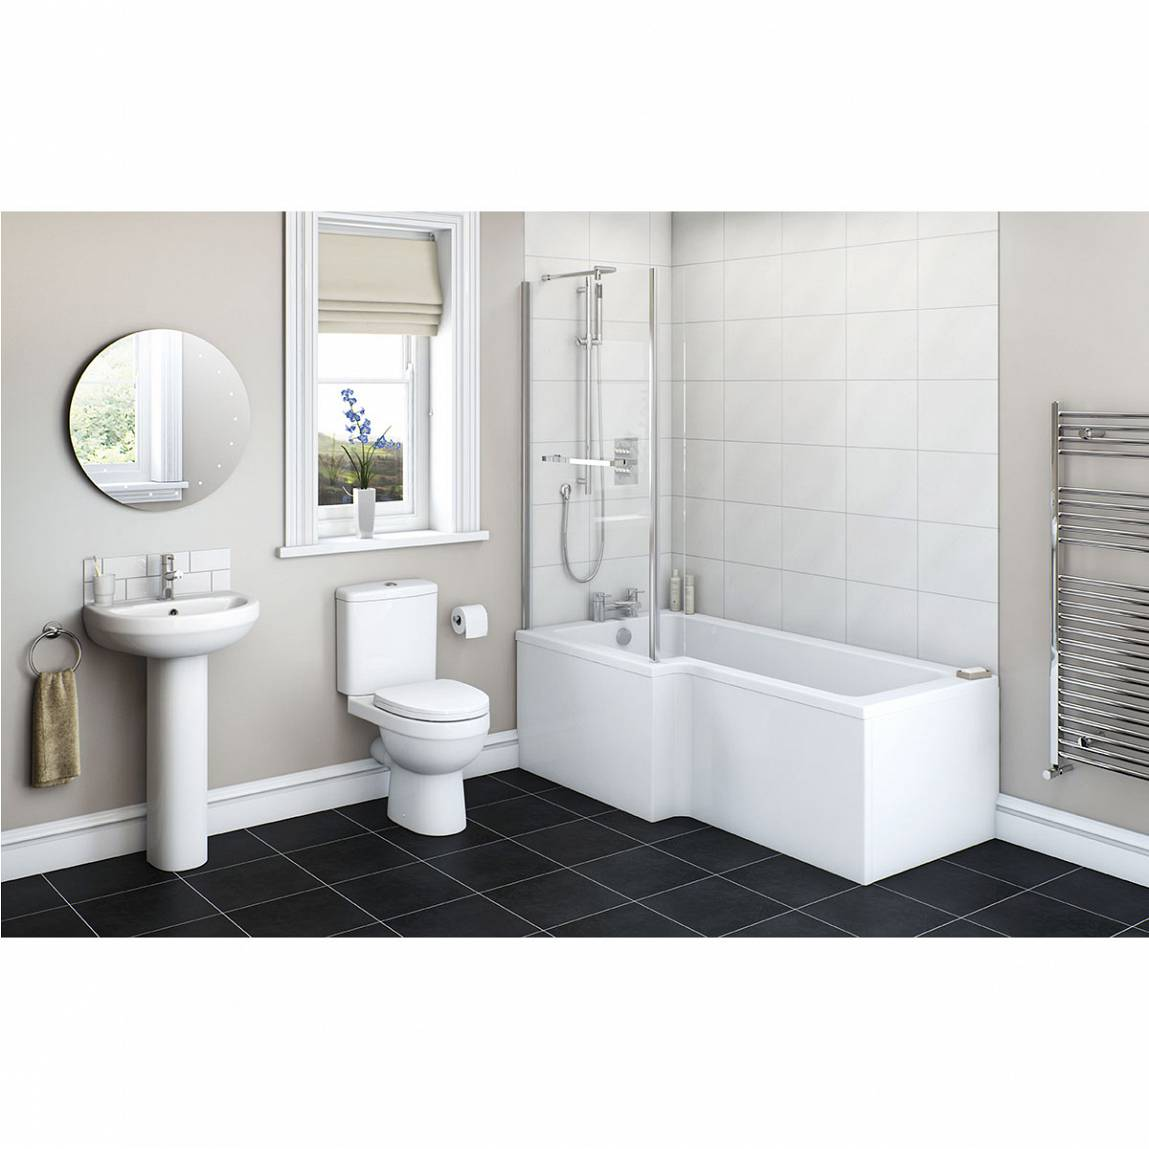 Image of Energy Bathroom Suite with Boston 1700 x 850 Shower Bath LH